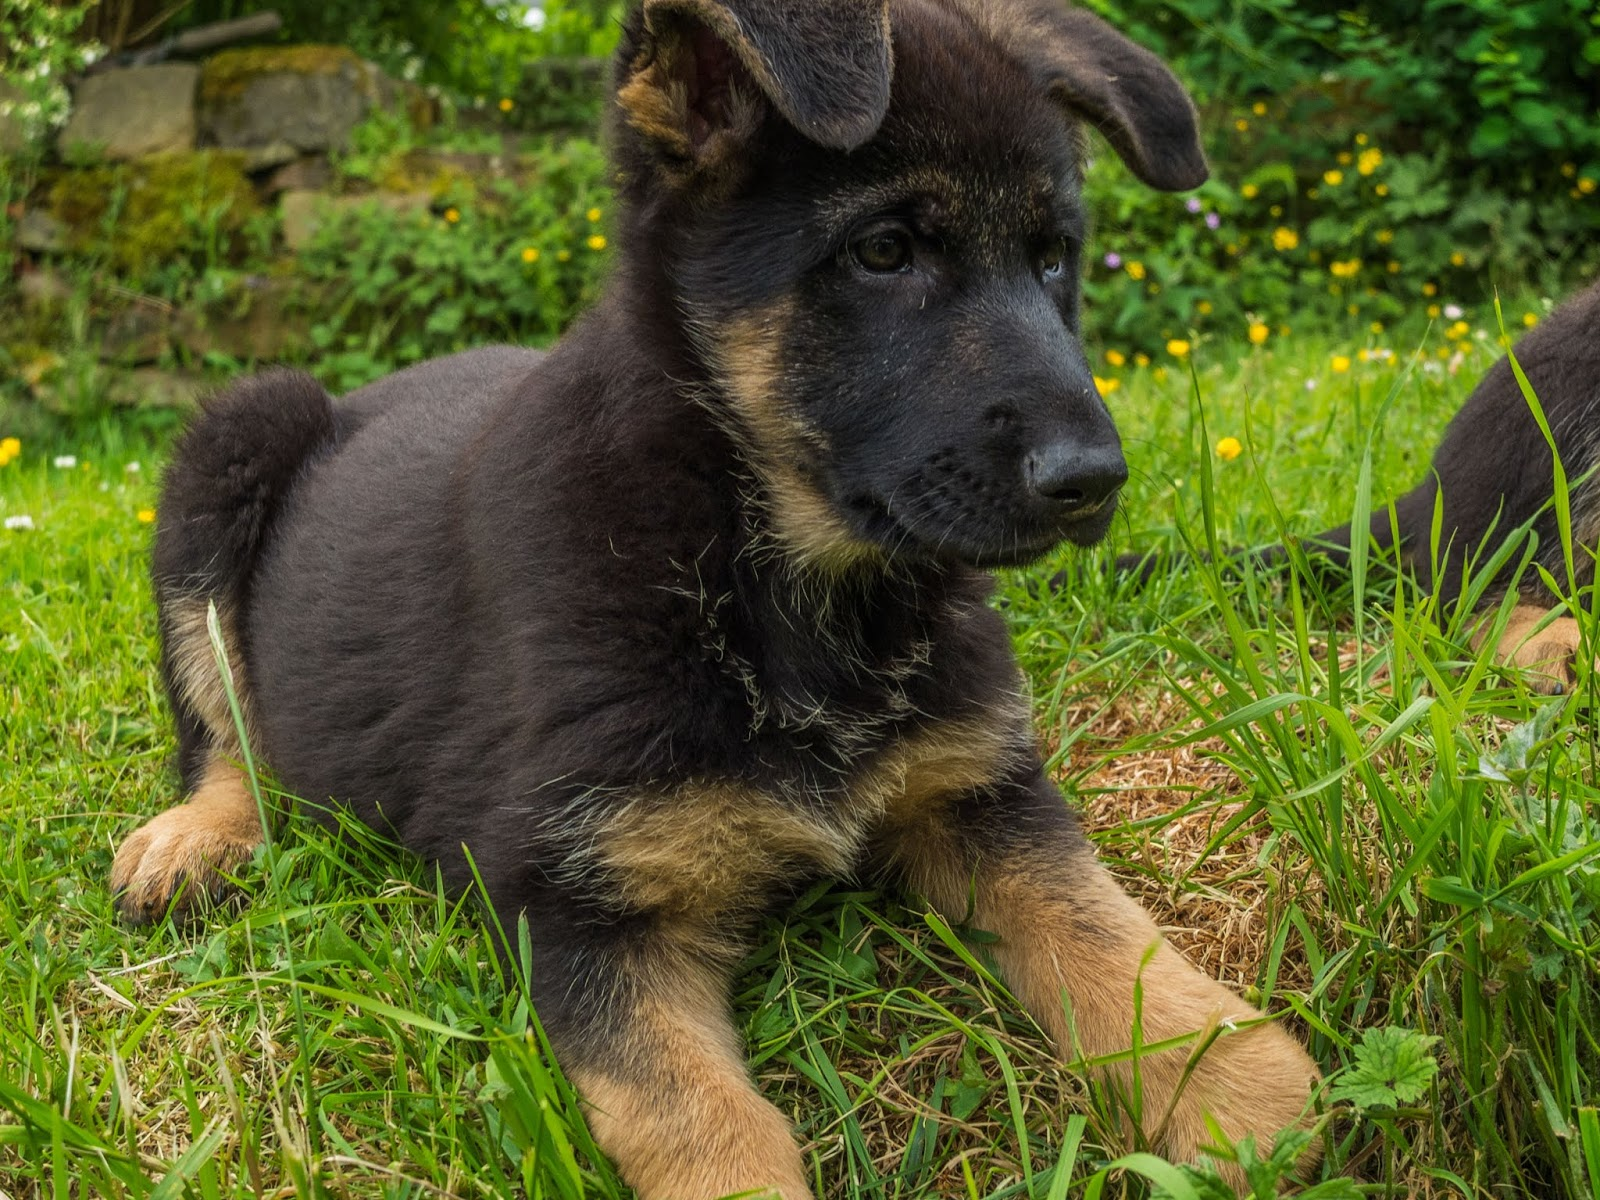 A German Shepherd puppy hanging over a grassy embankment with her ears forward and down.